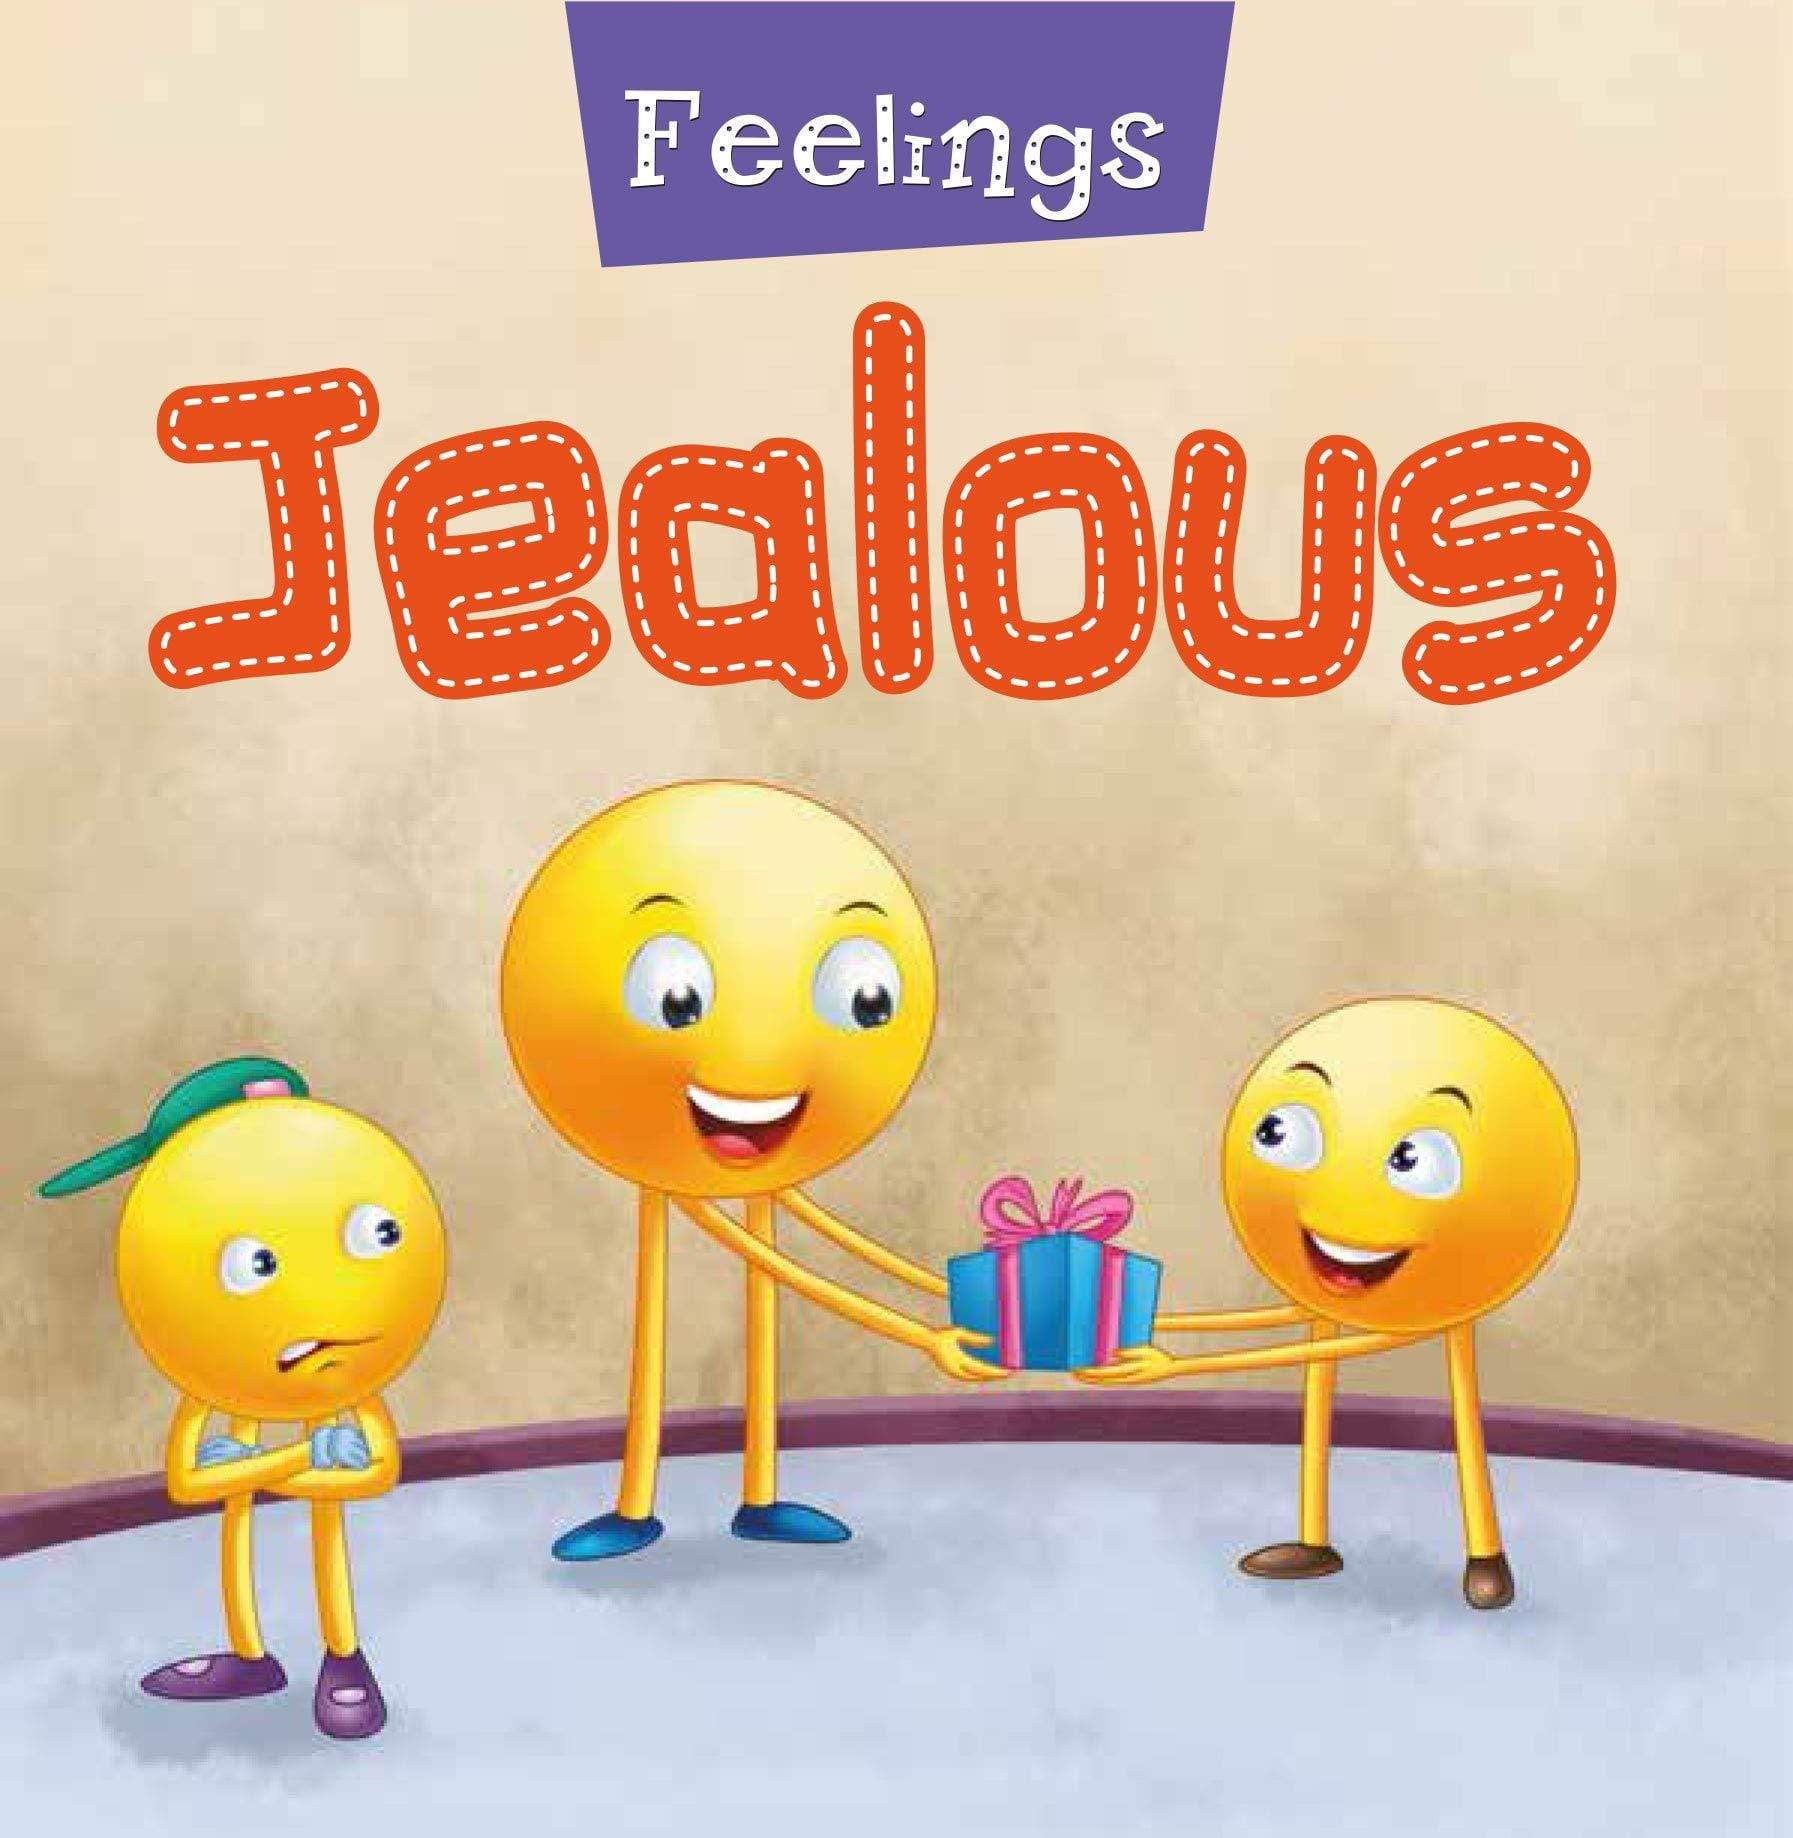 Feelings - Jealous Foam Book